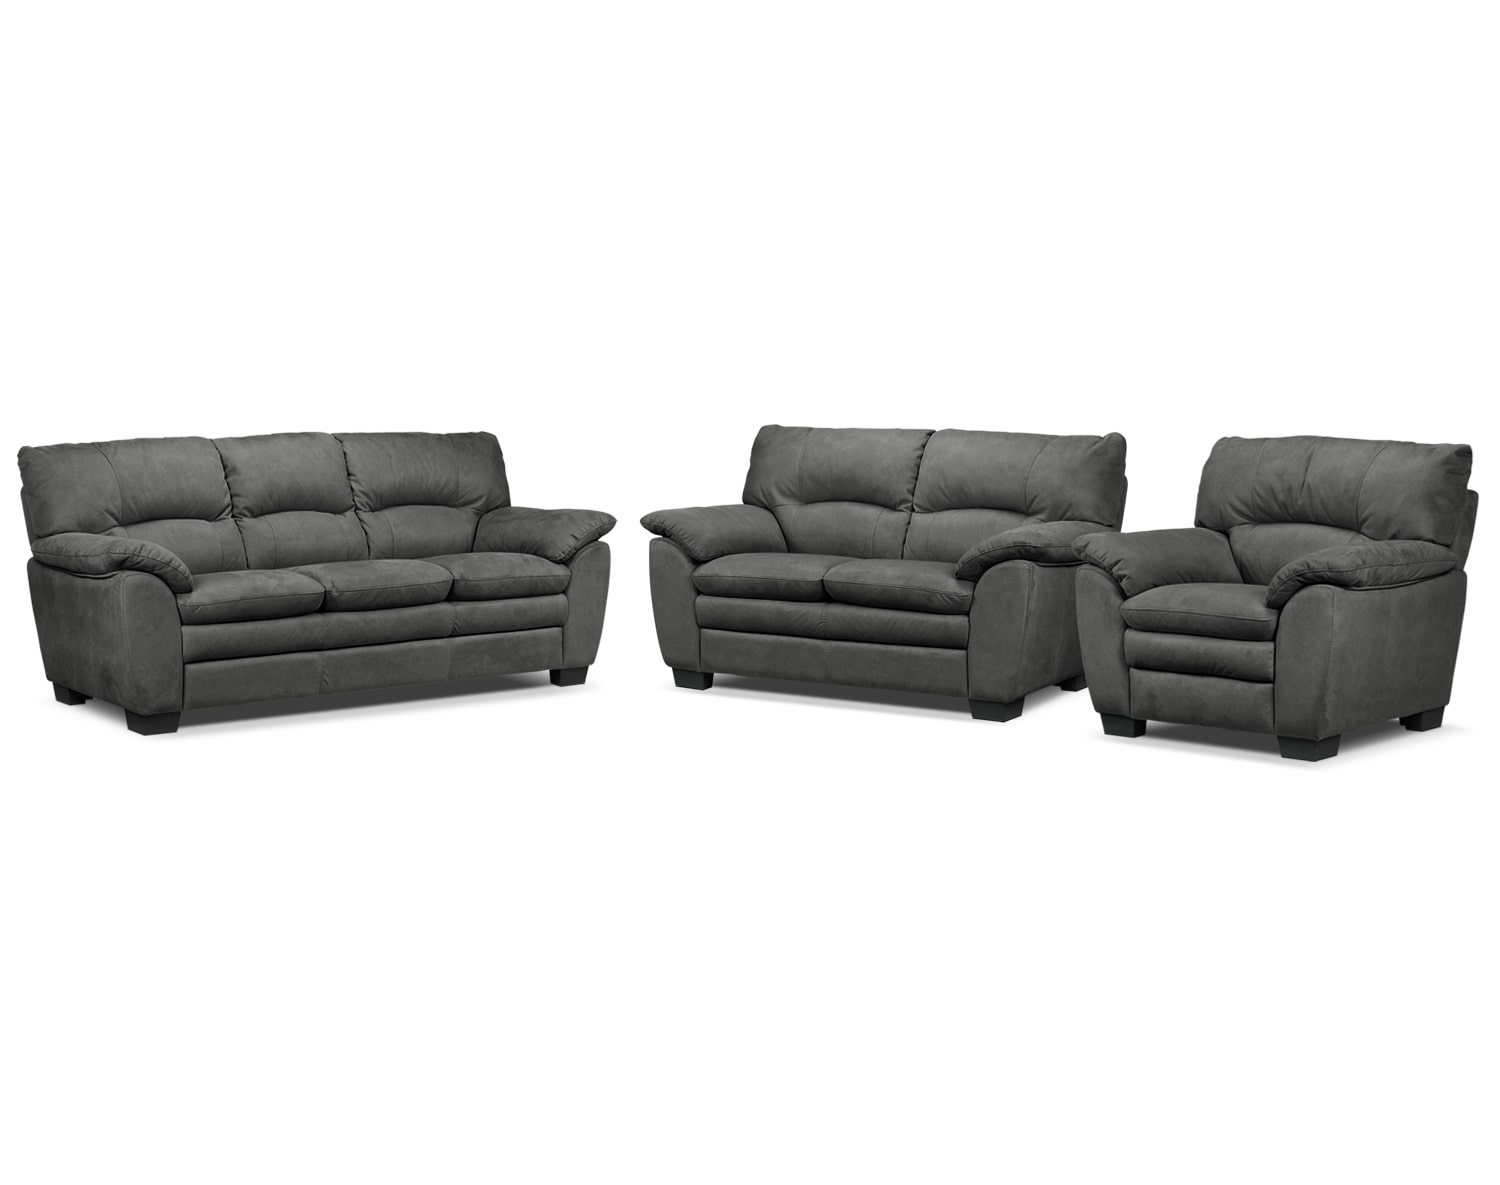 Kelleher Charcoal 3 Pc. Living Room Package